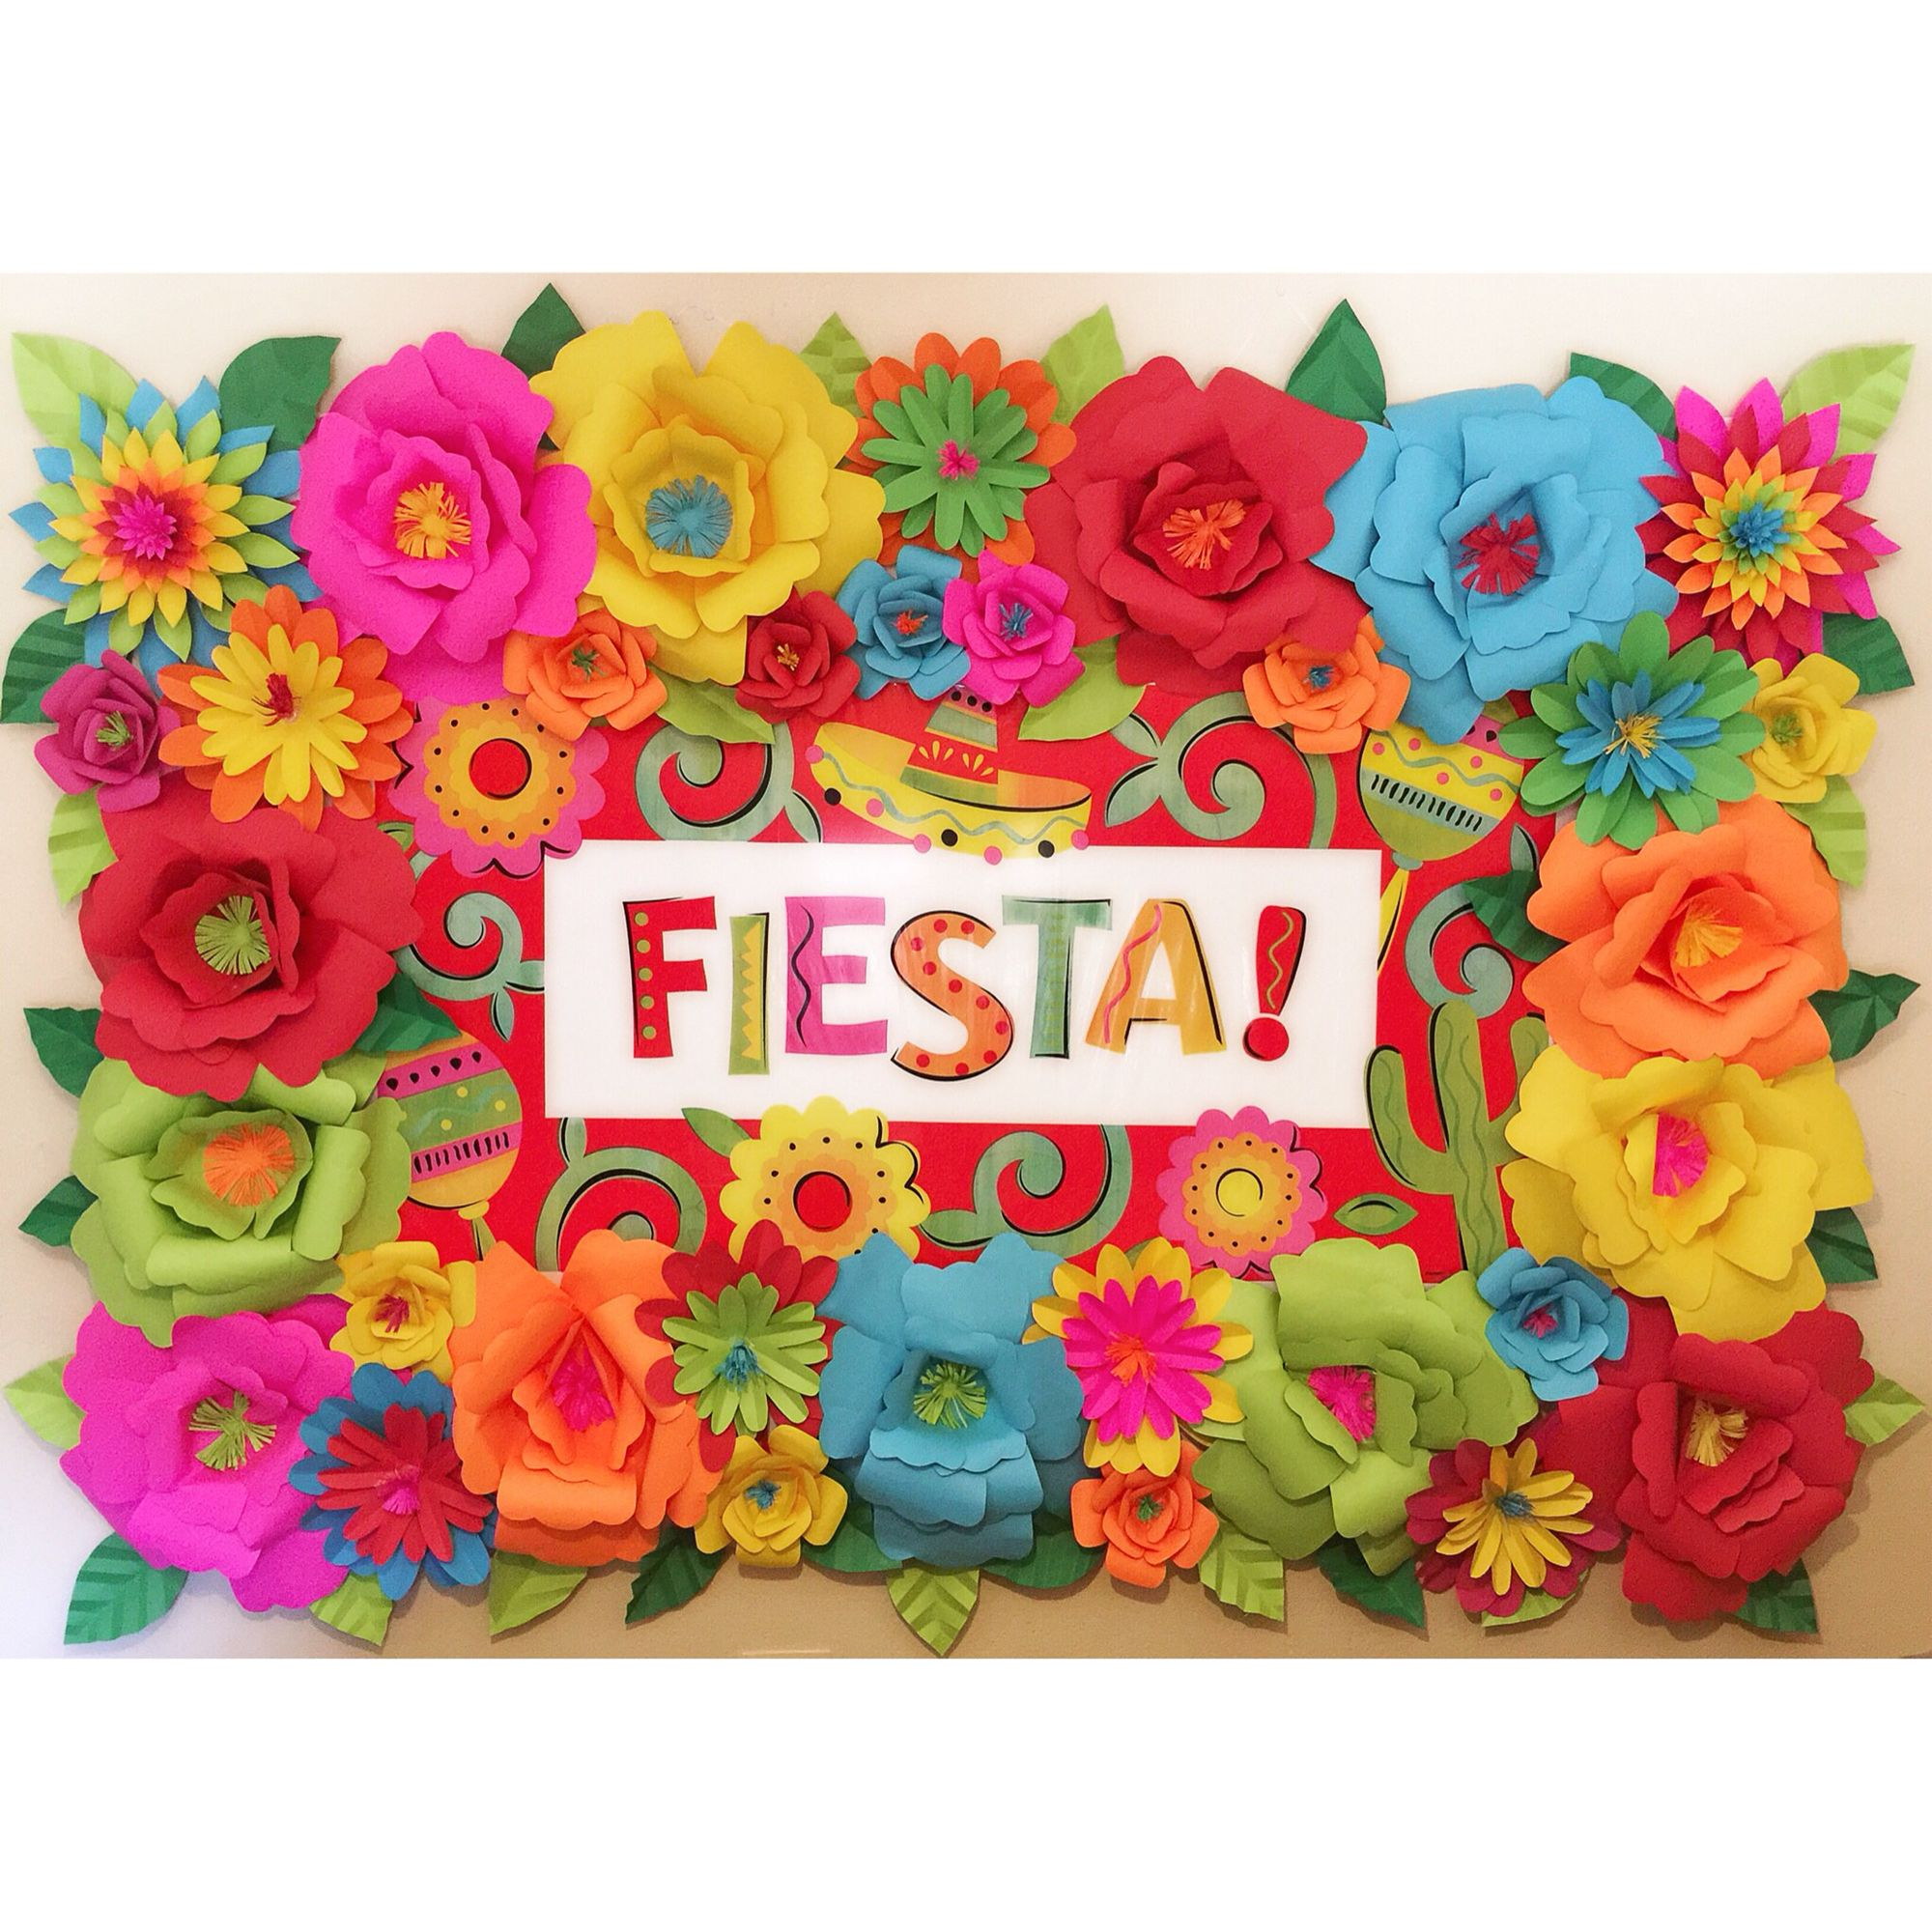 Mexican folklorica cth 2 color systems pinterest for Decoracion kermes mexicana